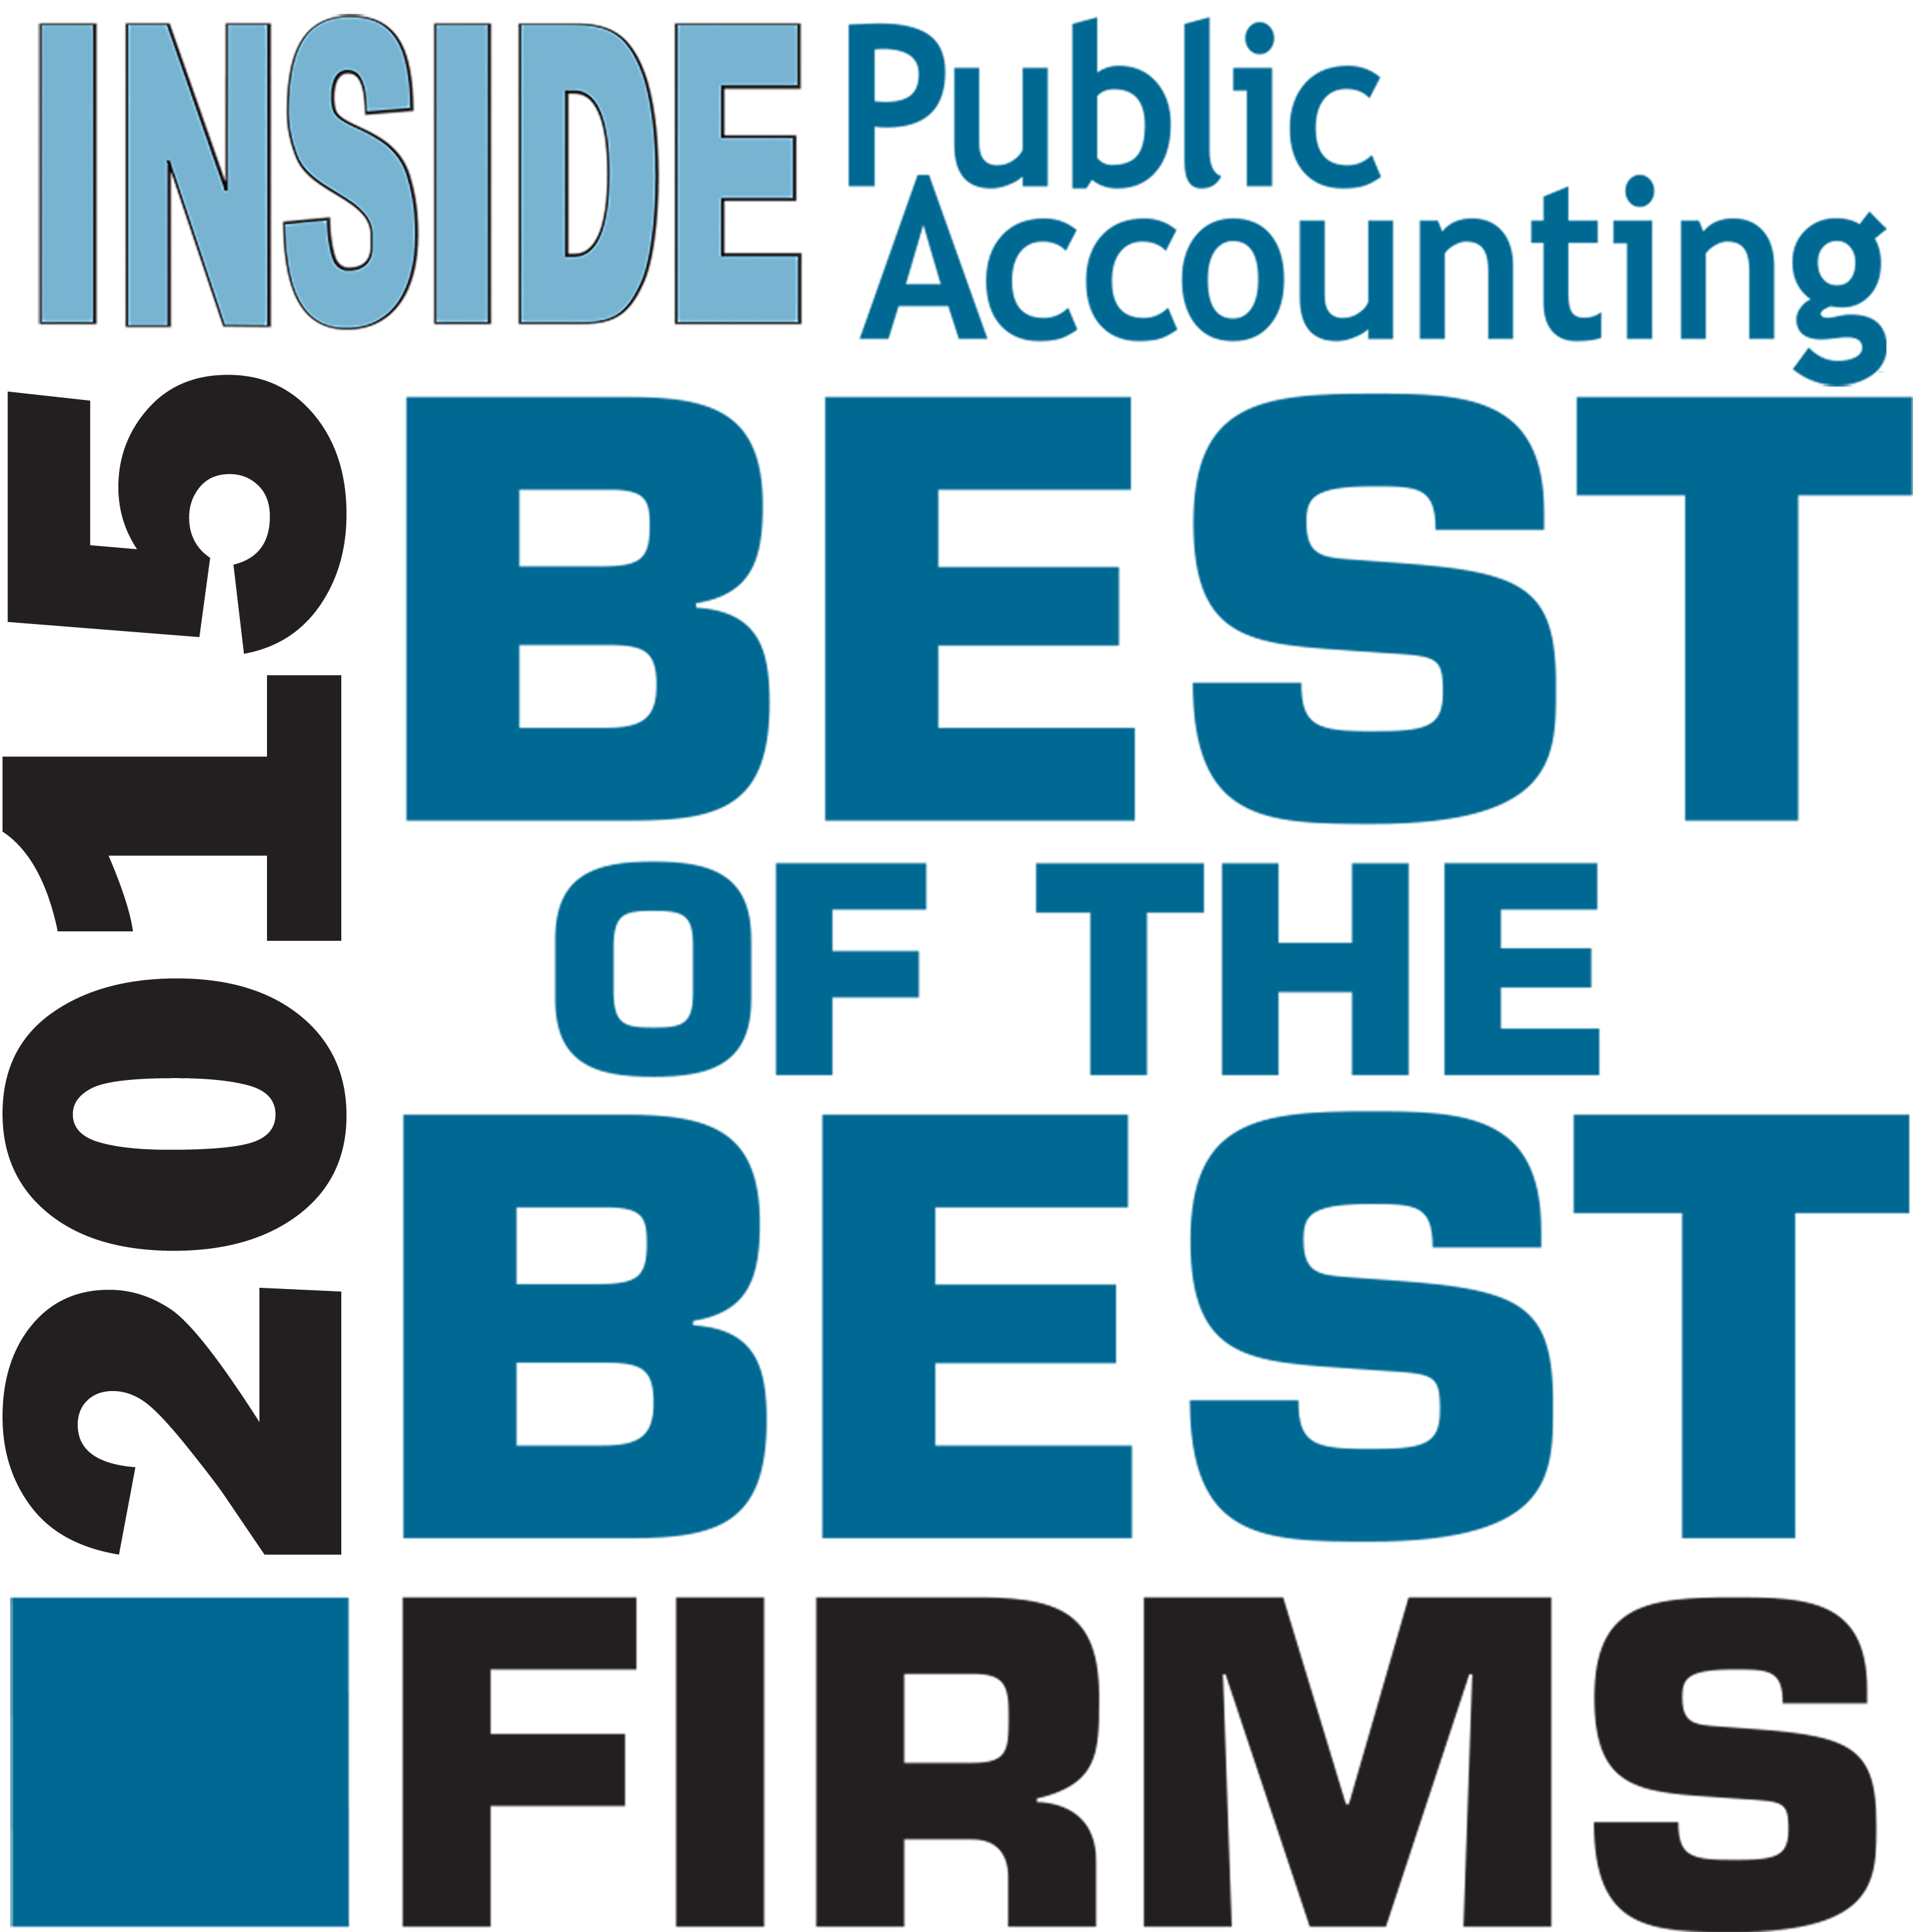 RRBB Accountants & Advisors named in IPA's '2015 Best of the Best ...